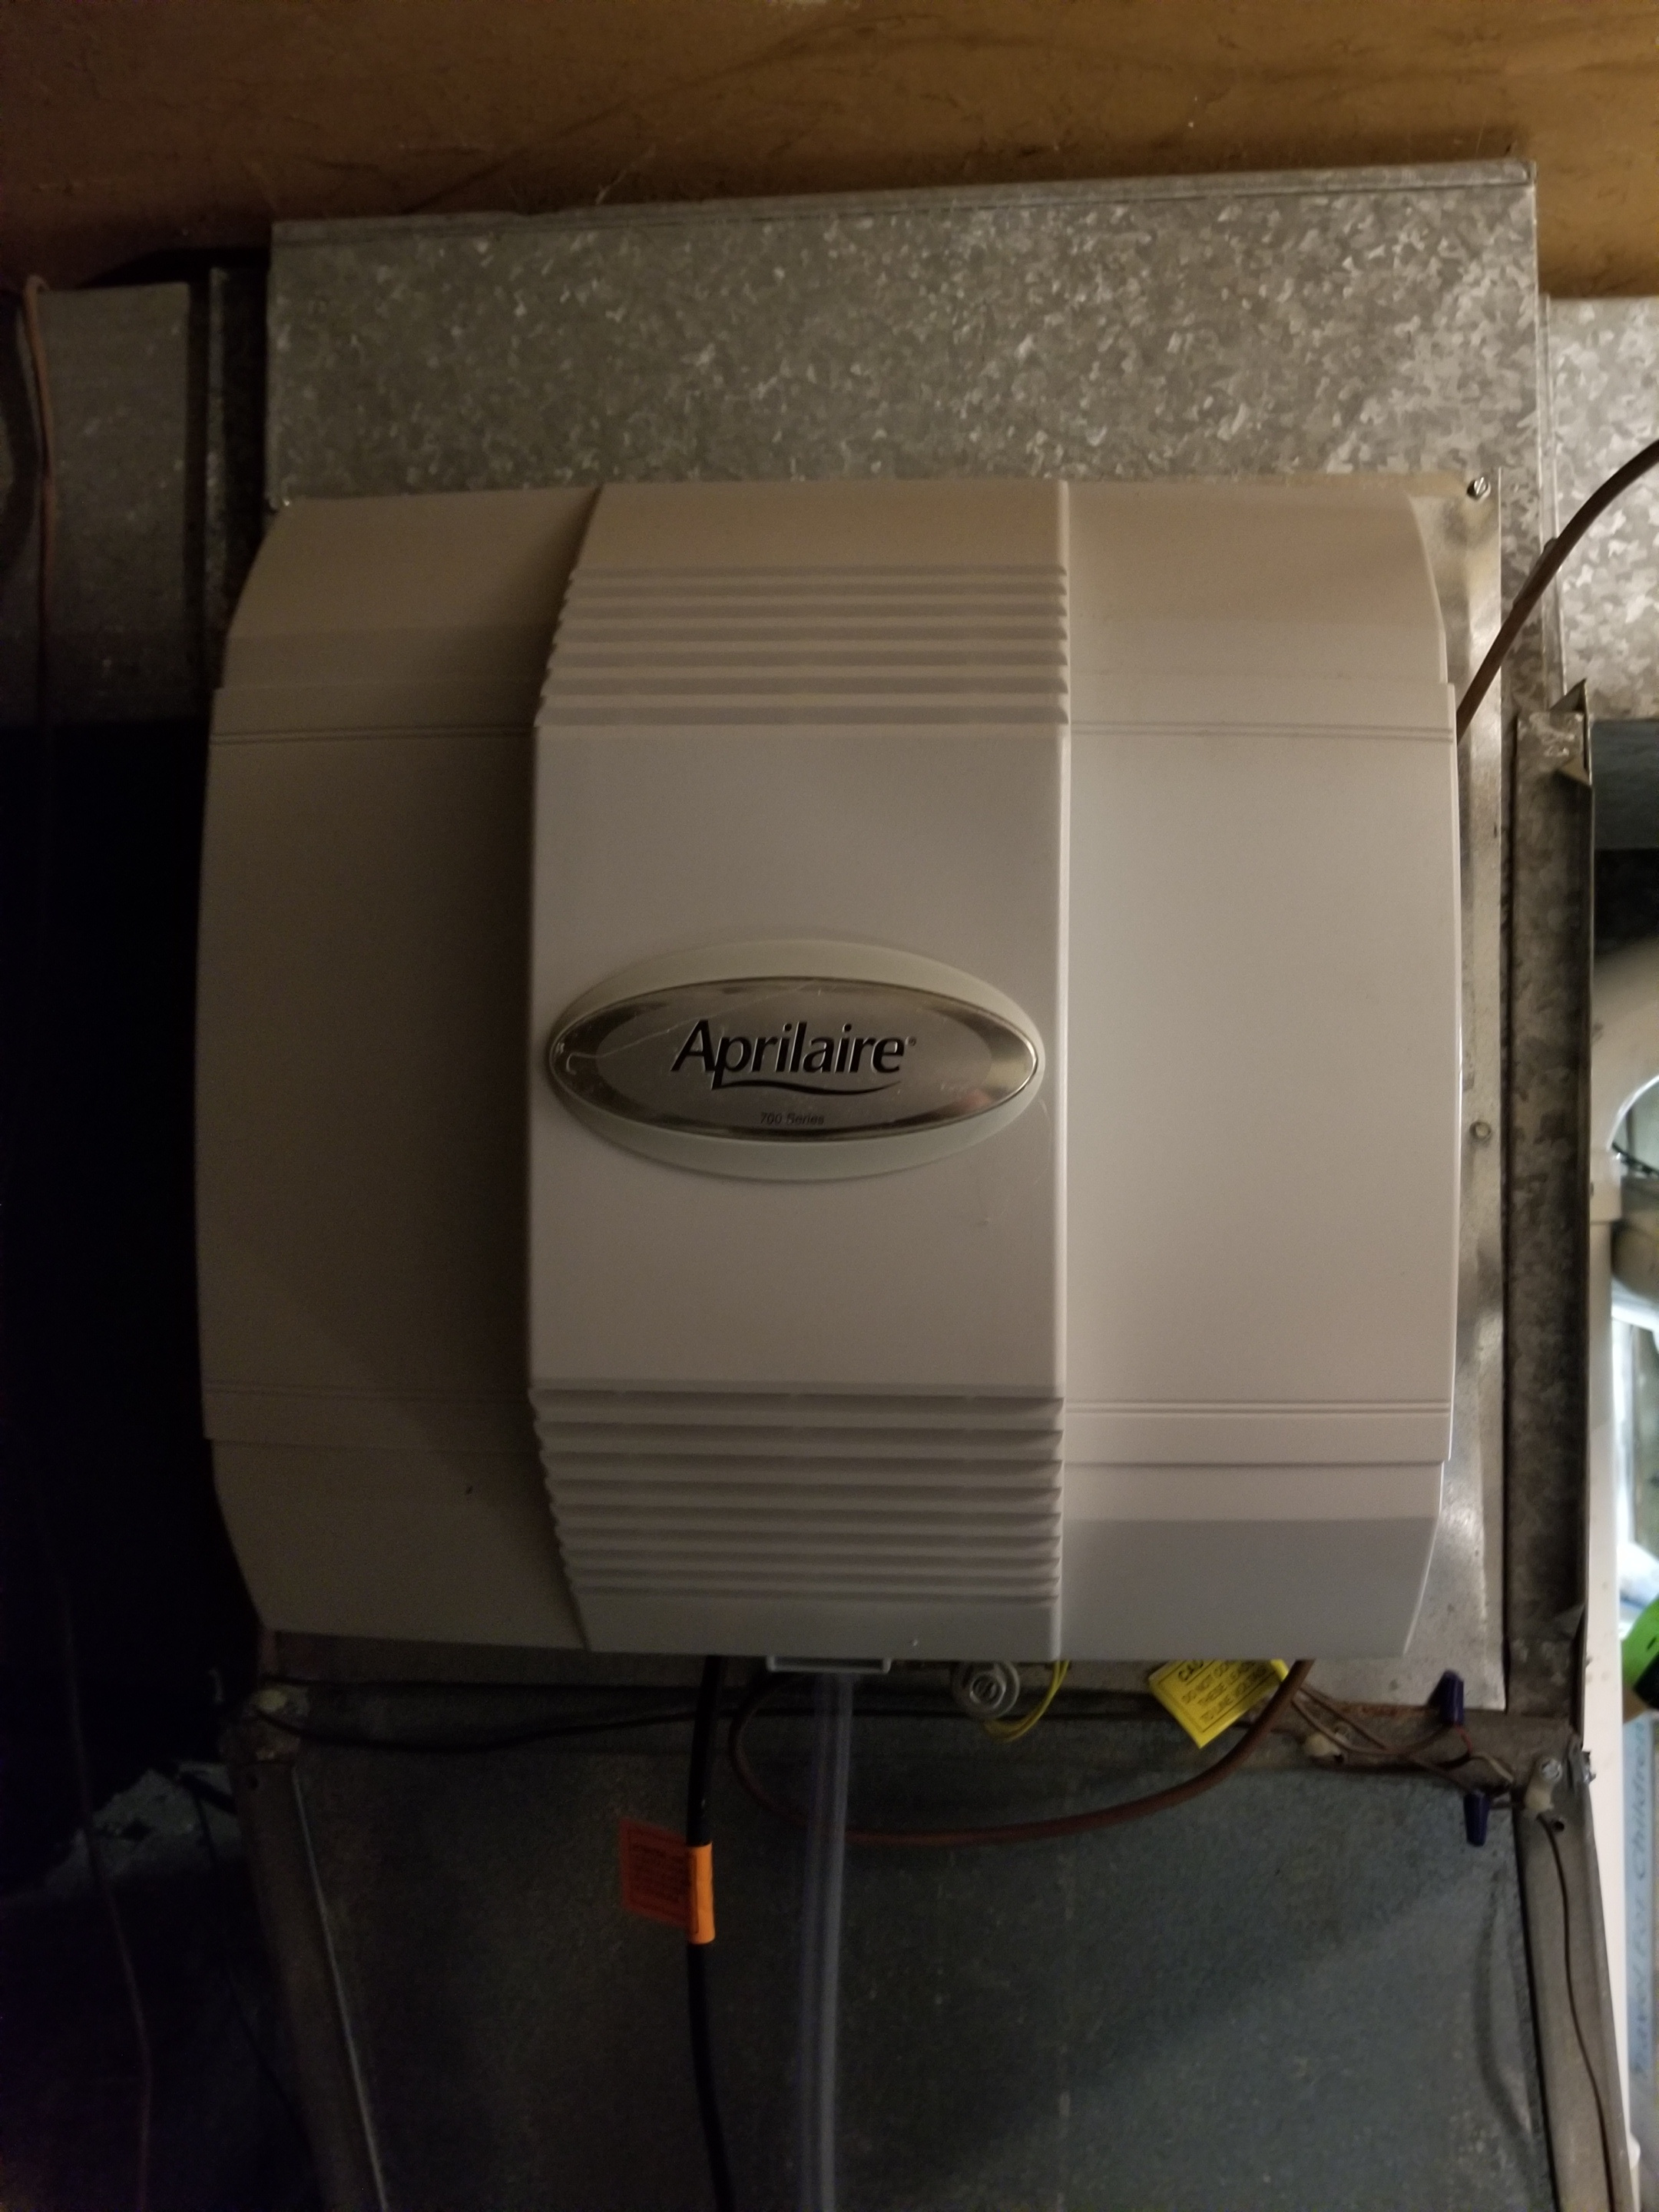 Repaired the Aprilaire humidifier and made adjustments to improve the overall efficiency and life expectancy of the equipment